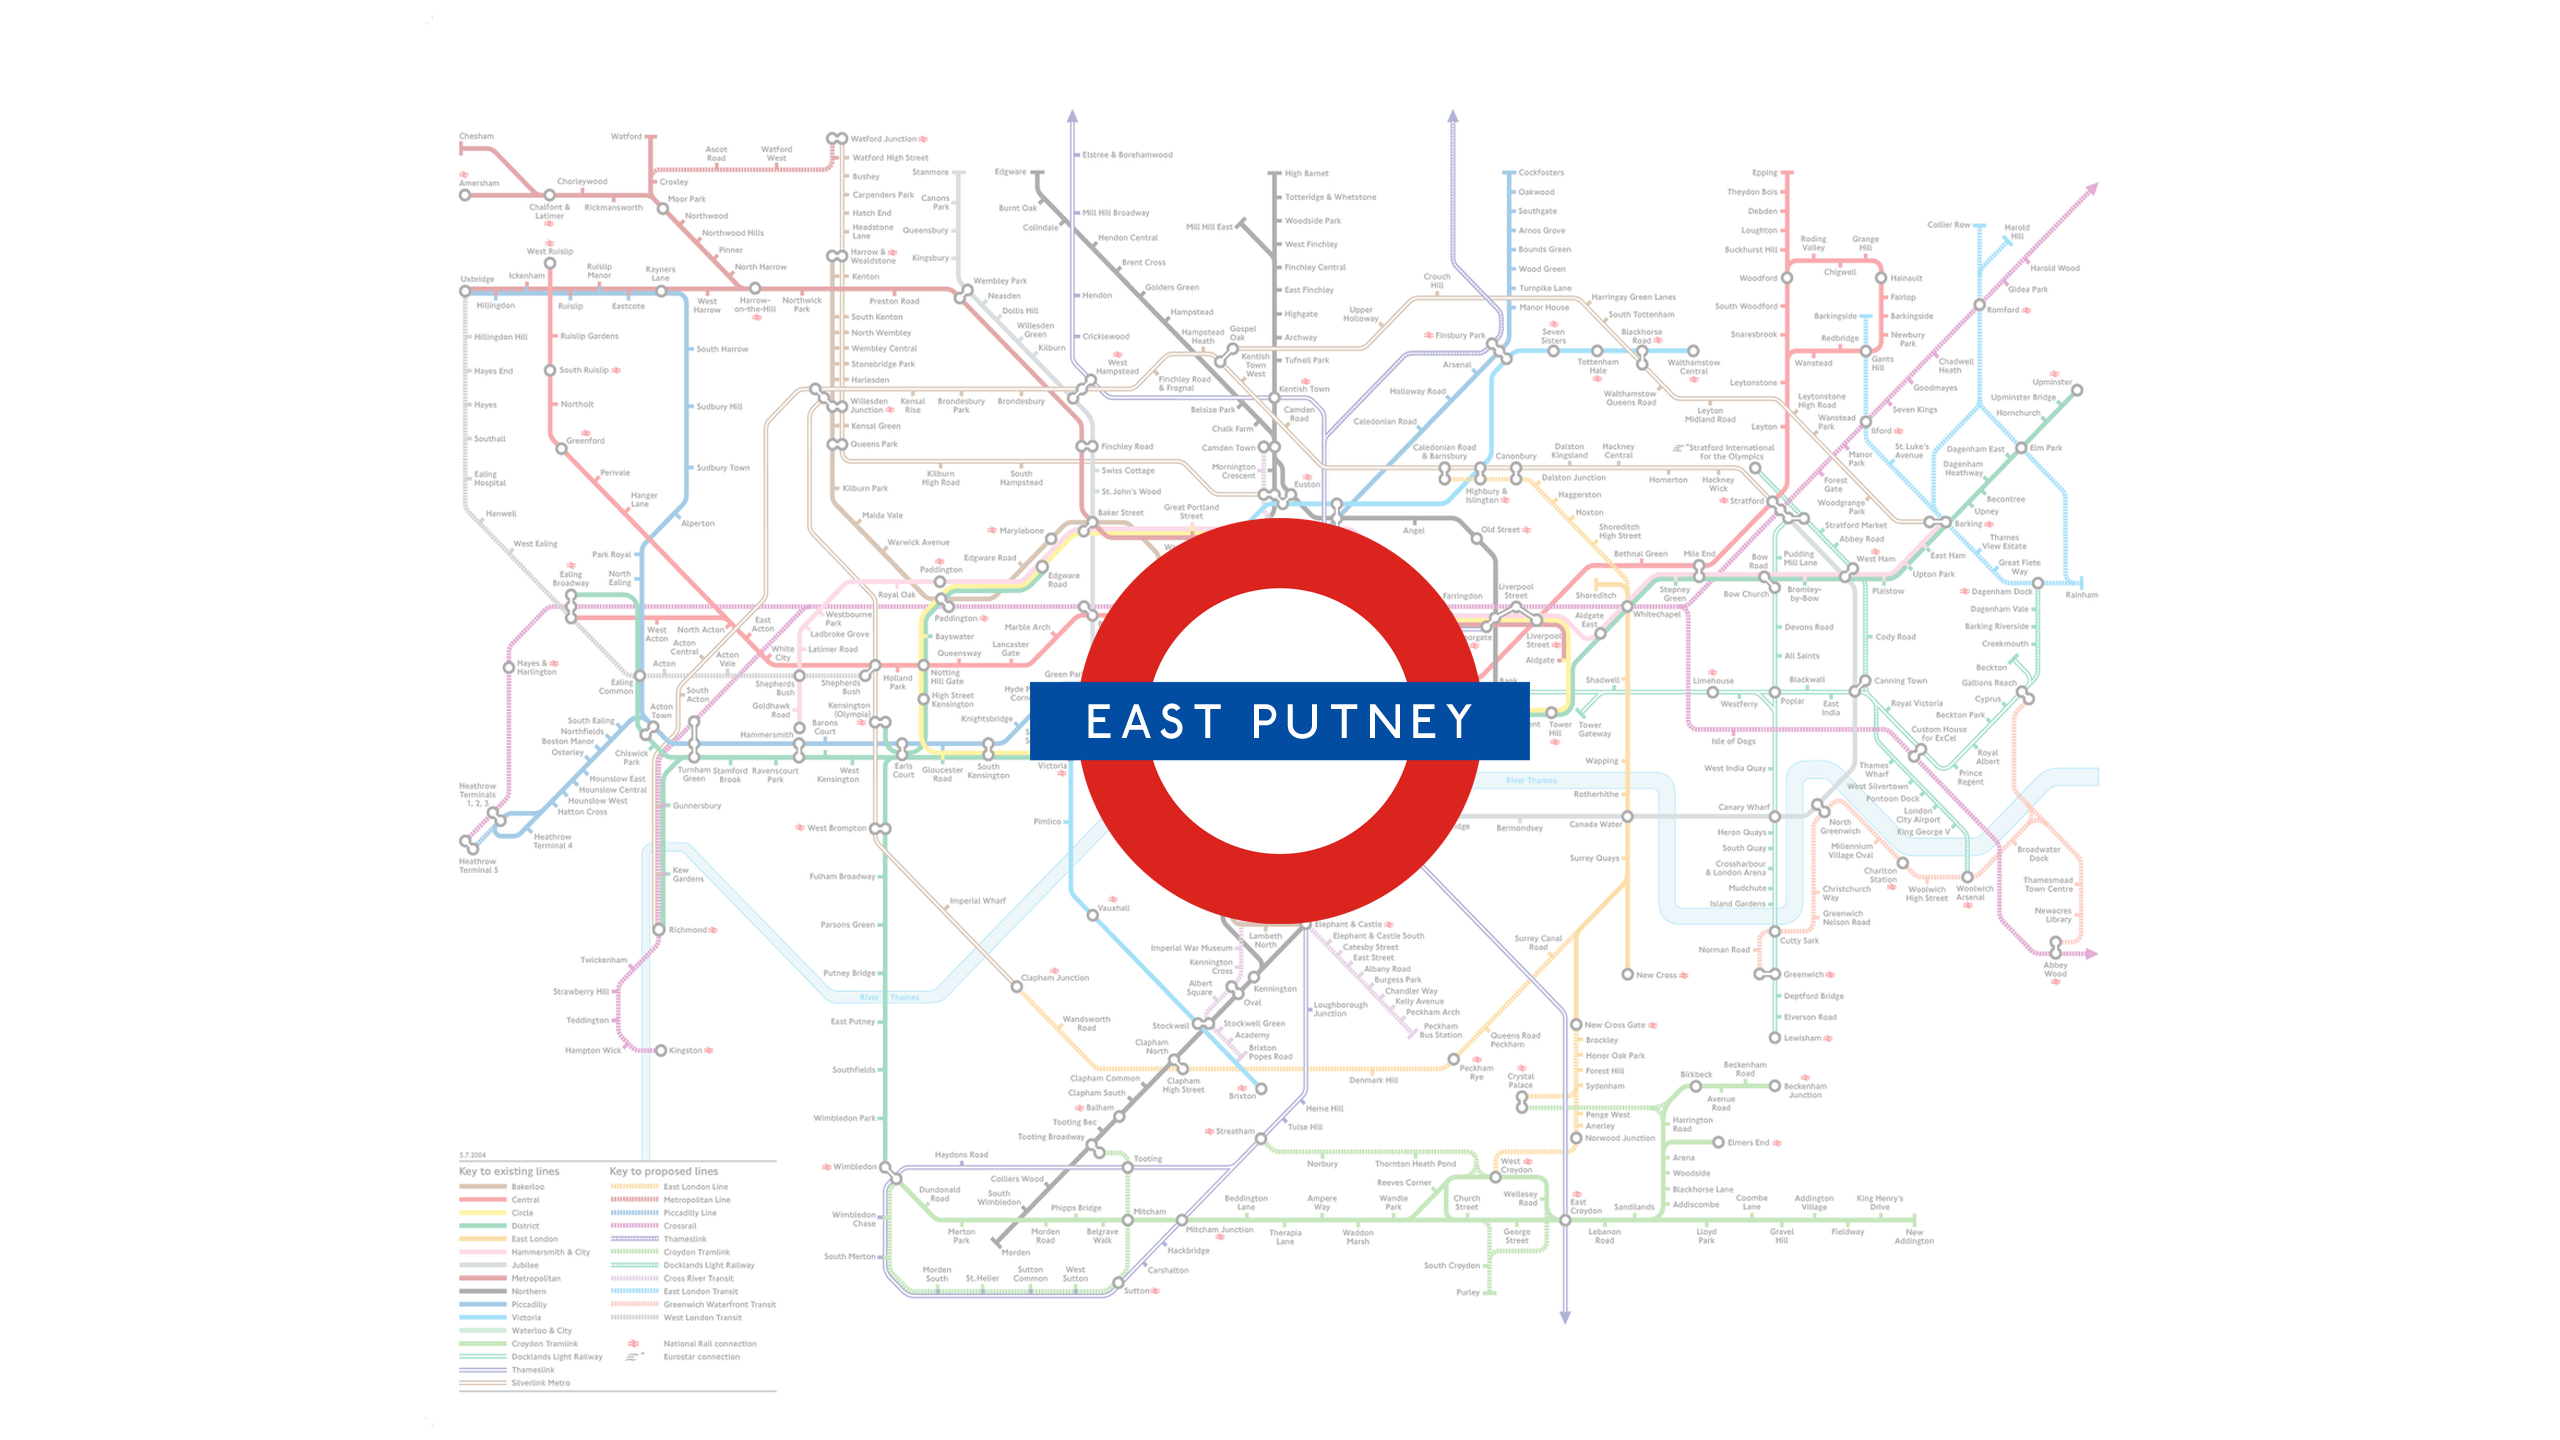 East Putney (Map)